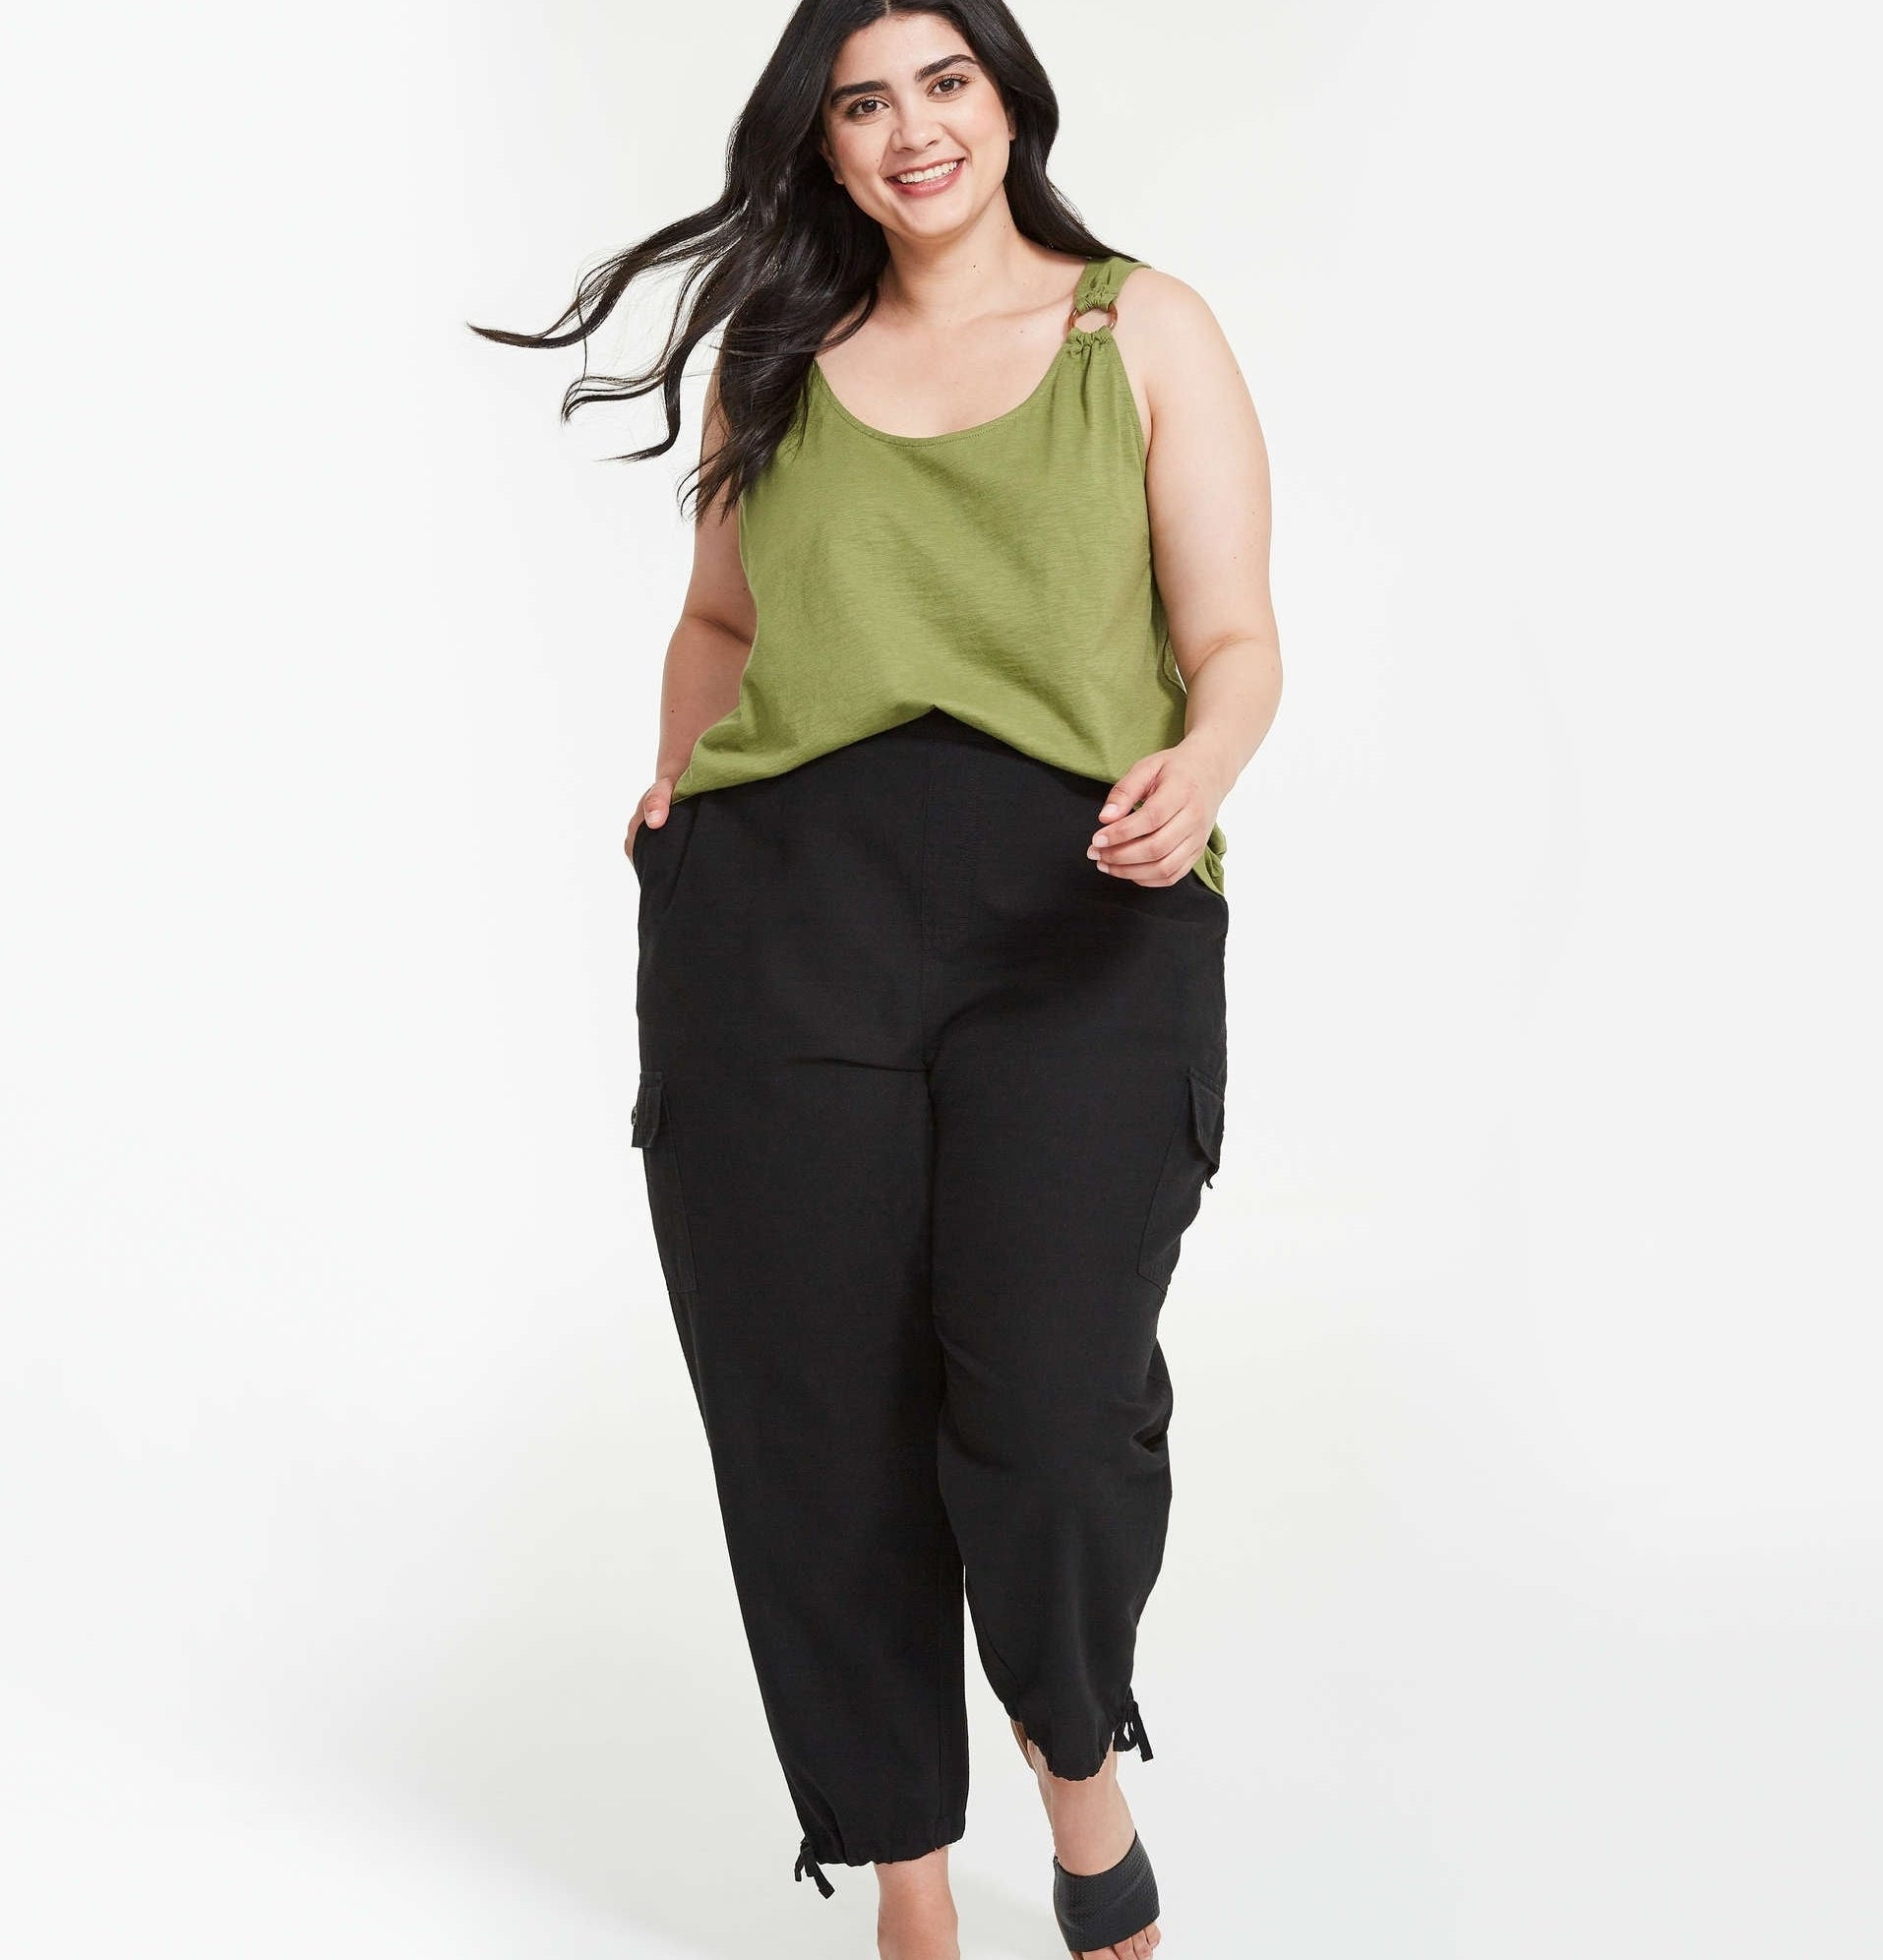 a person wearing the cargo pants with a tank